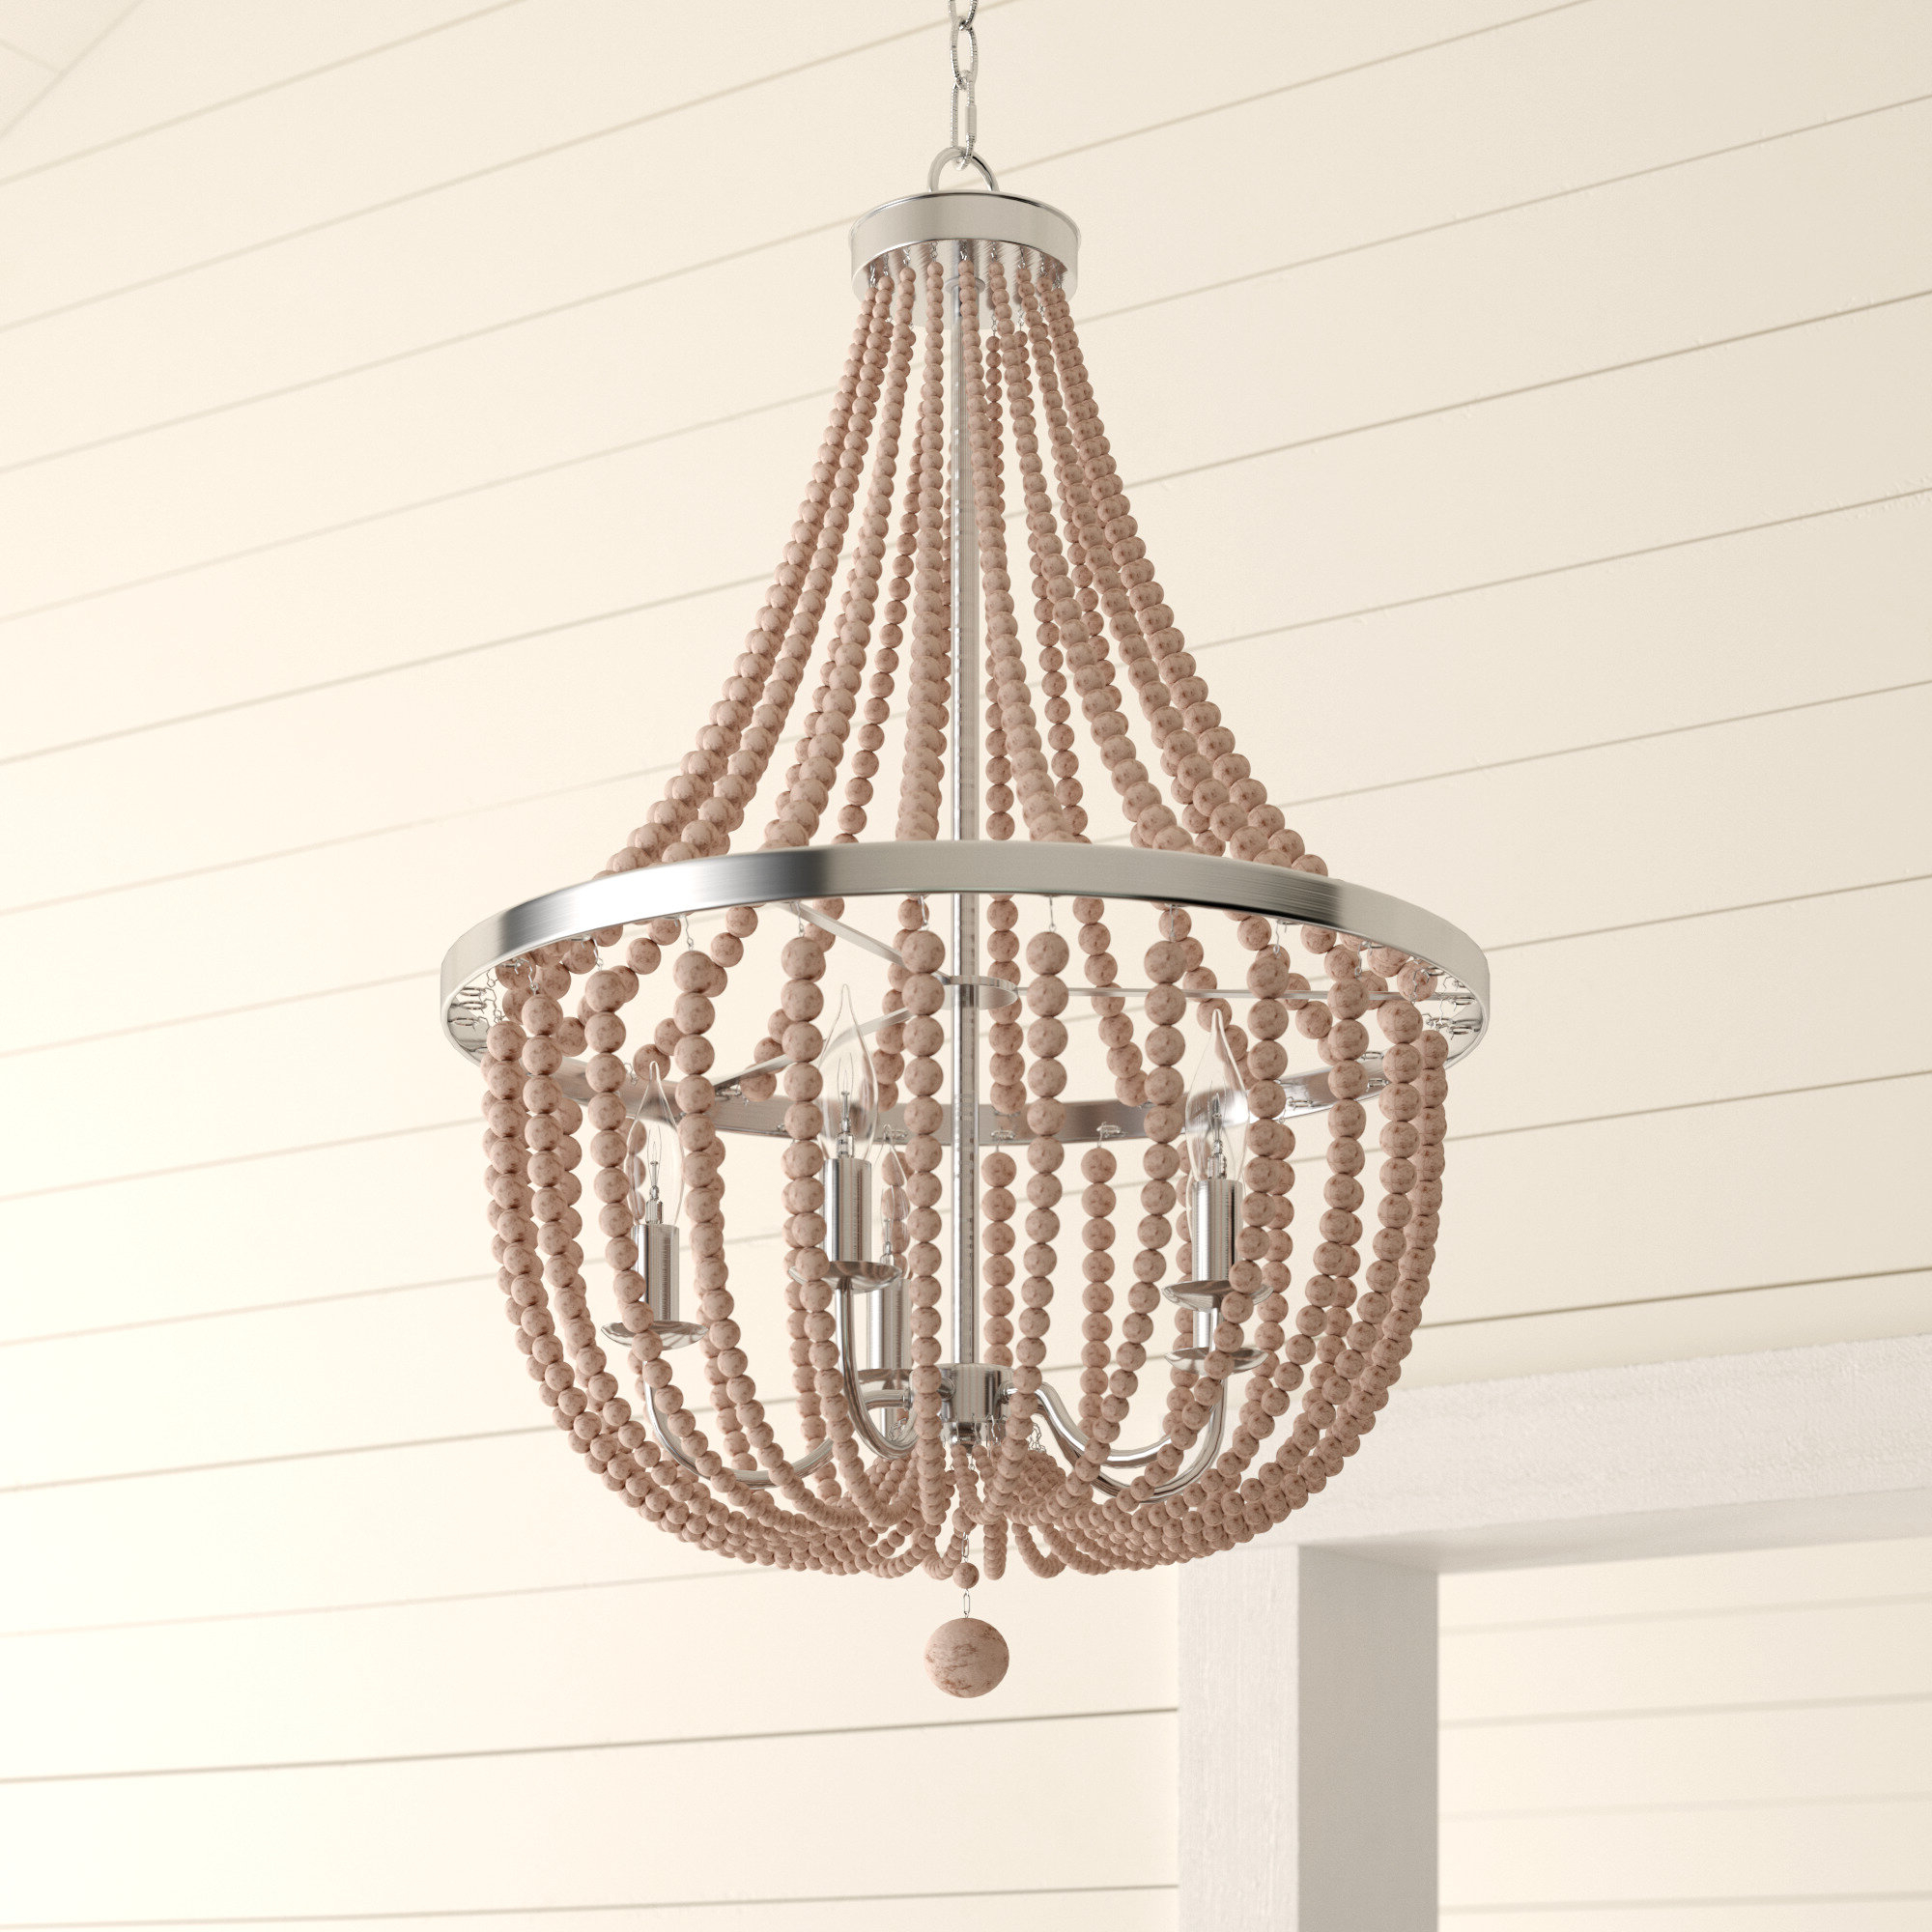 Ladonna 5 Light Novelty Chandeliers Regarding Well Liked Bay Isle Home Tilden Wood Bead 5 Light Empire Chandelier (View 10 of 20)